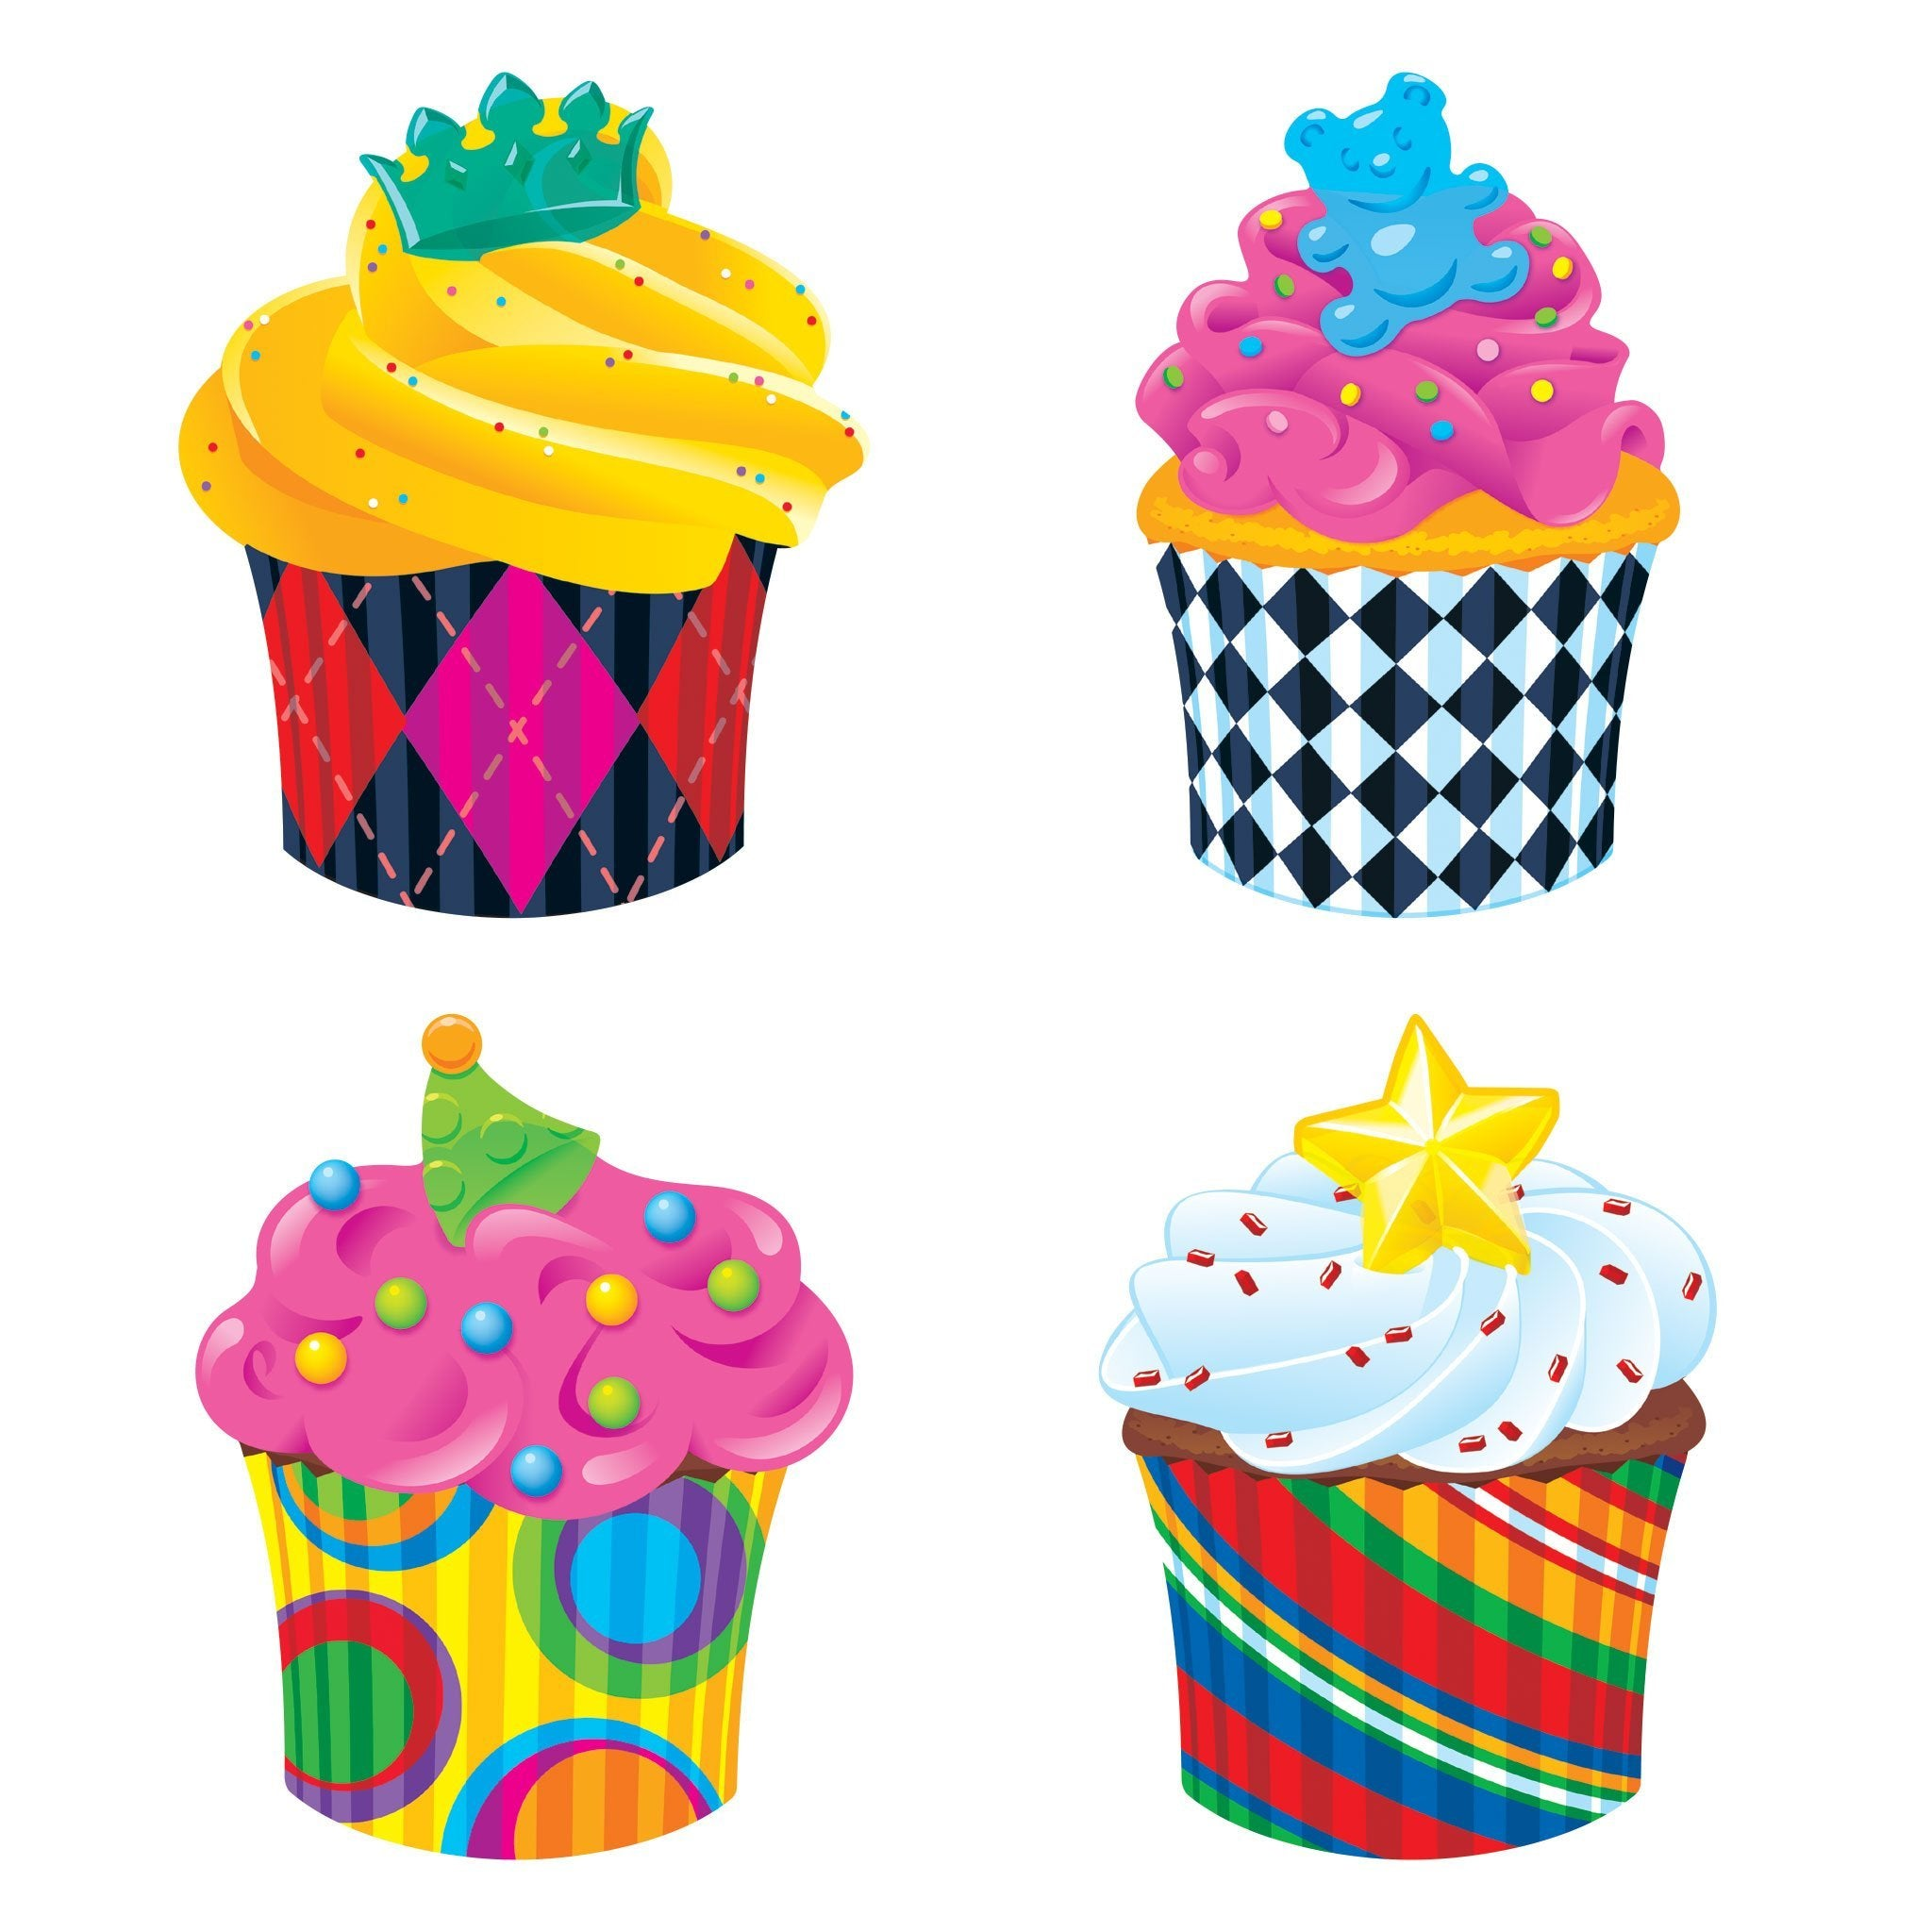 Cupcakes The Bake Shop™ Cut Outs & Accents